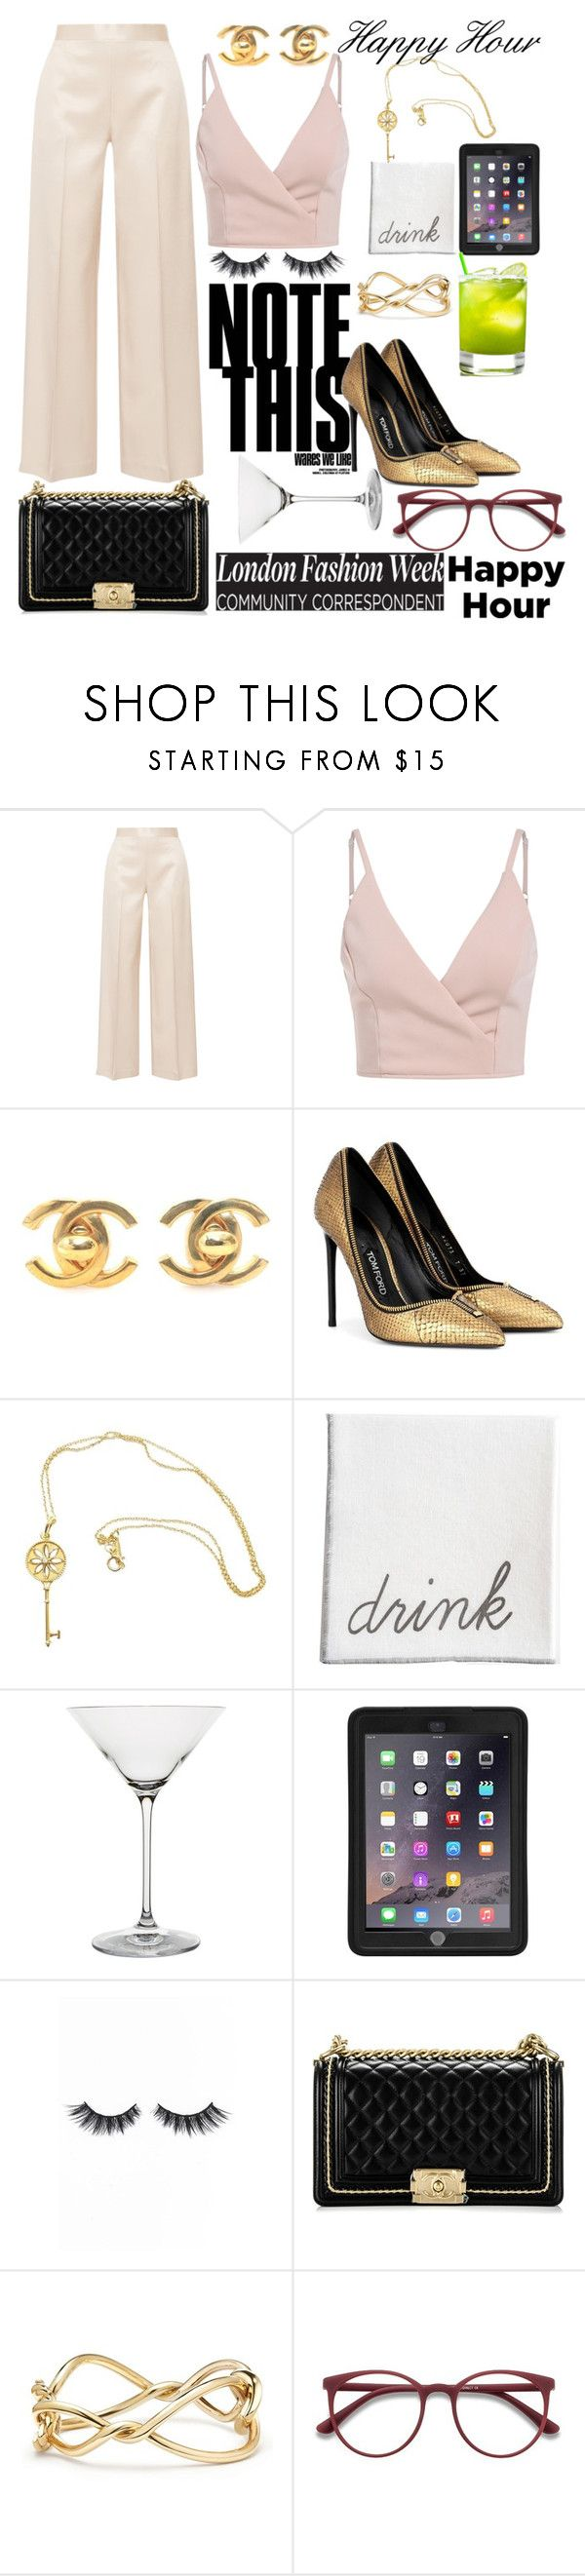 """Happy Hour"" by agsabins ❤ liked on Polyvore featuring The Row, Chanel, Tom Ford, Tiffany & Co., Riedel, Griffin, Violet Voss, David Yurman and EyeBuyDirect.com"